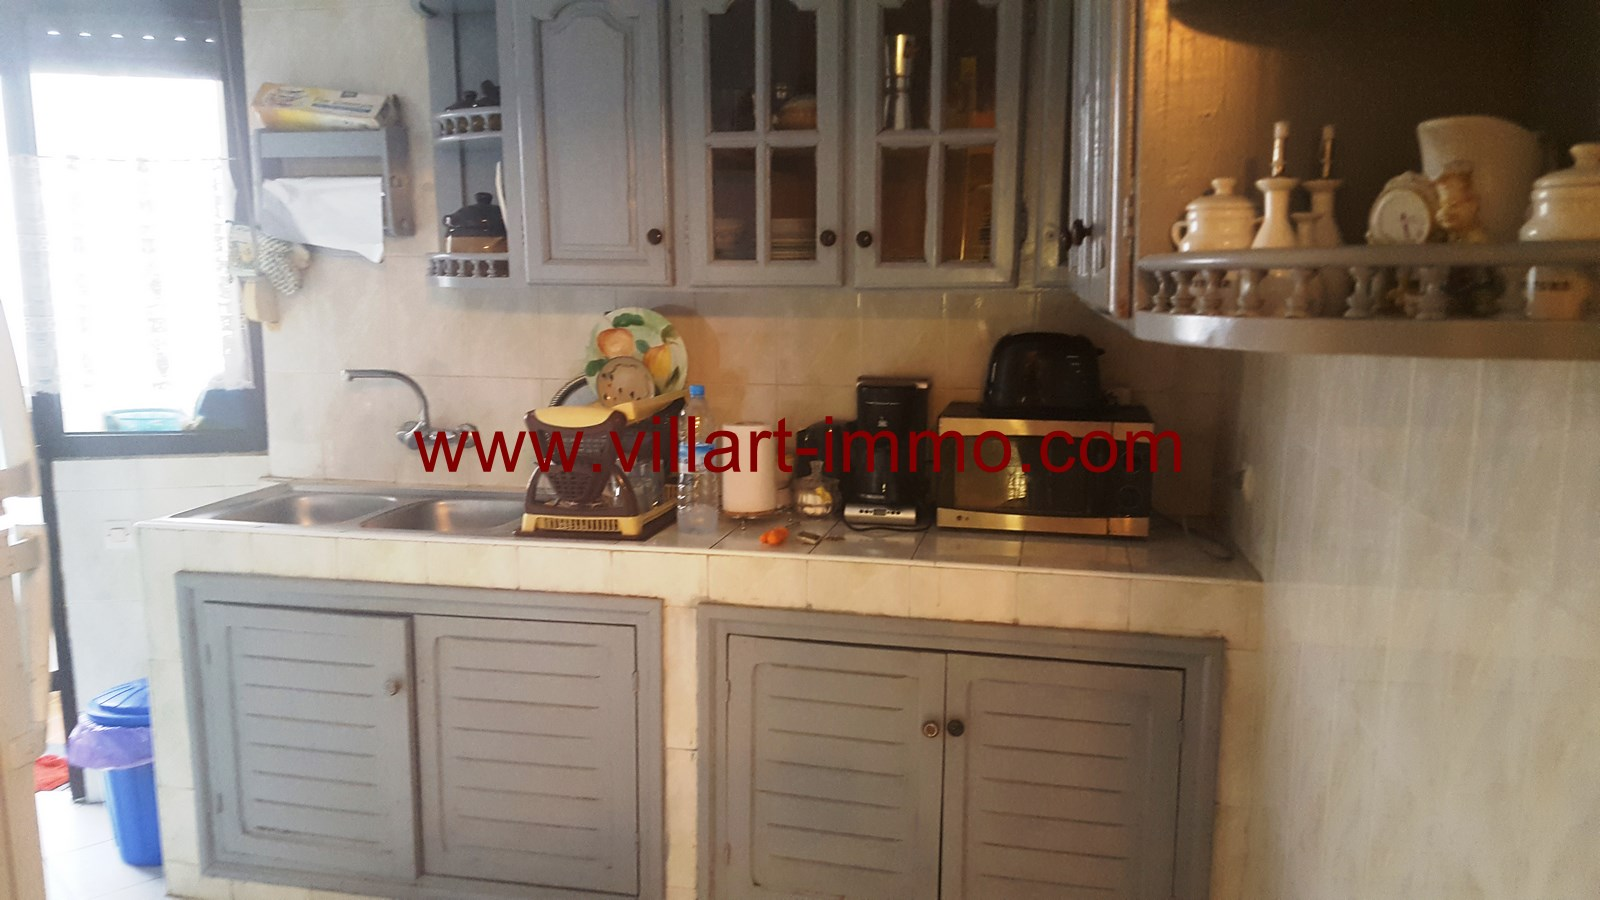 For Sale 3 Bedroom Apartment In Tangier City Centre Villart